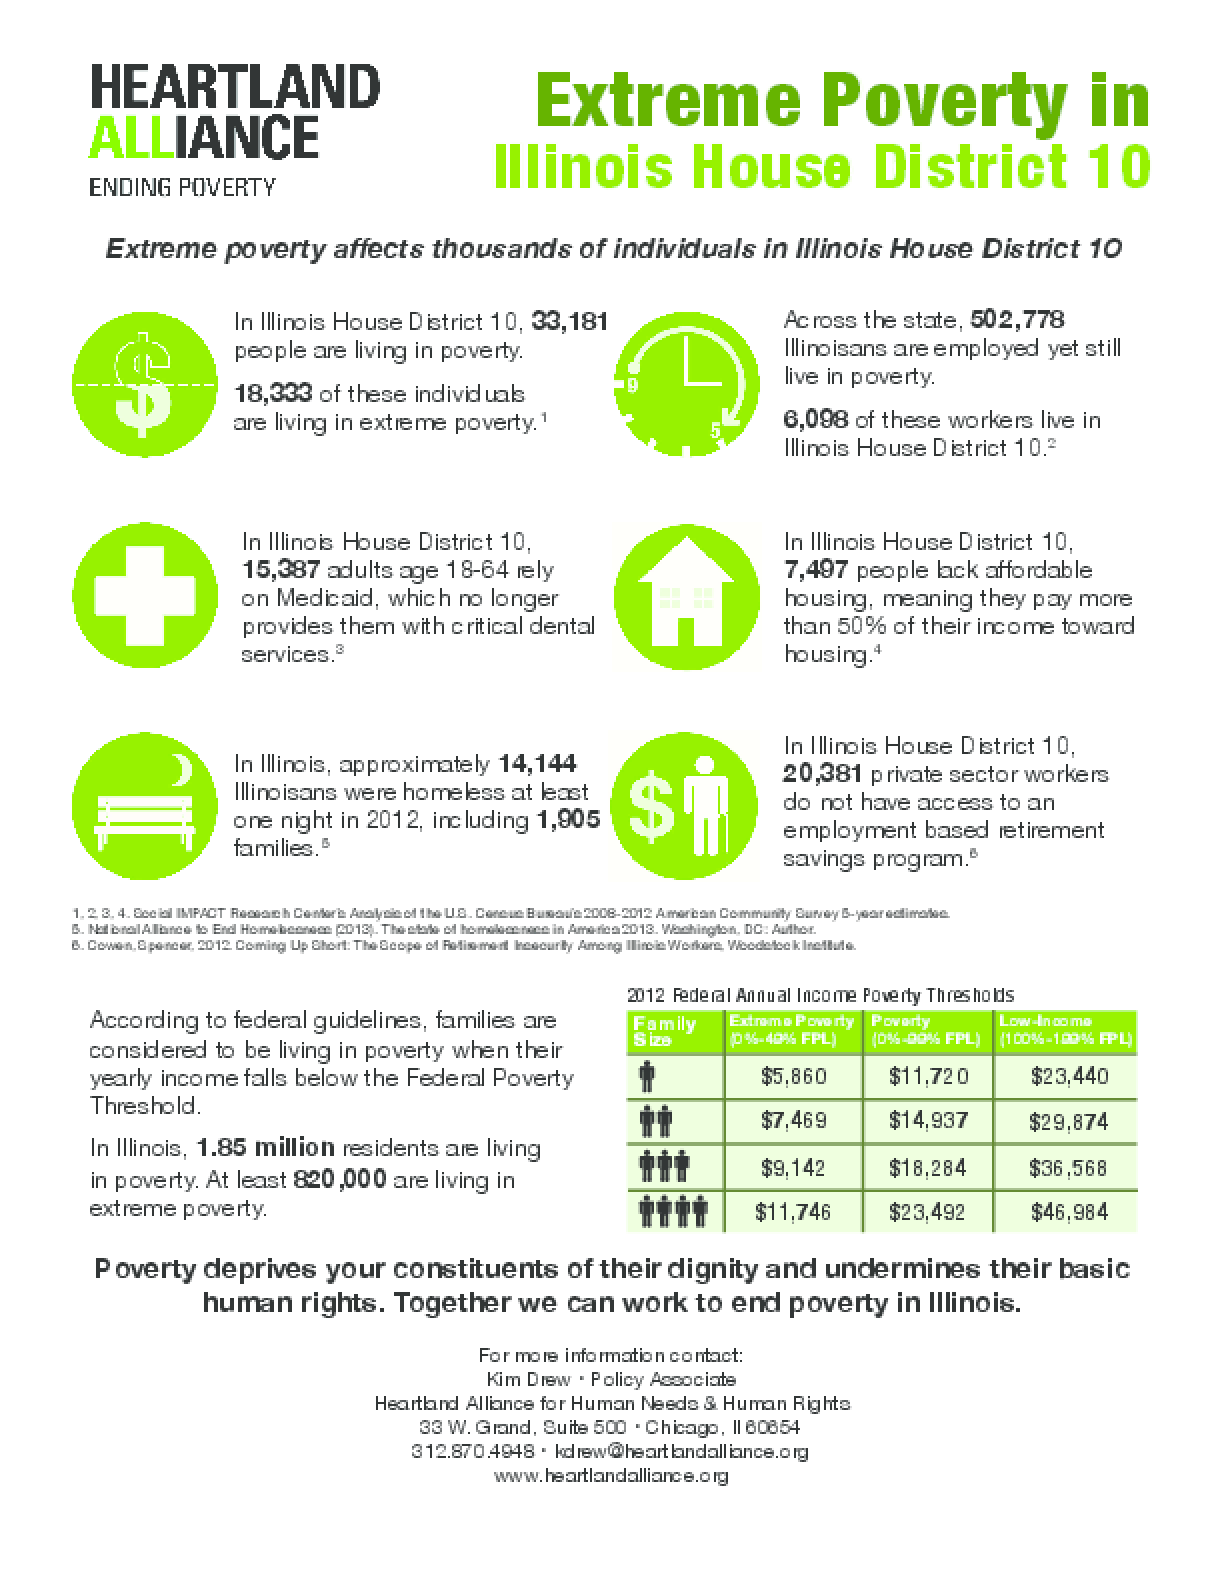 Poverty Fact Sheet for Illinois House District 10